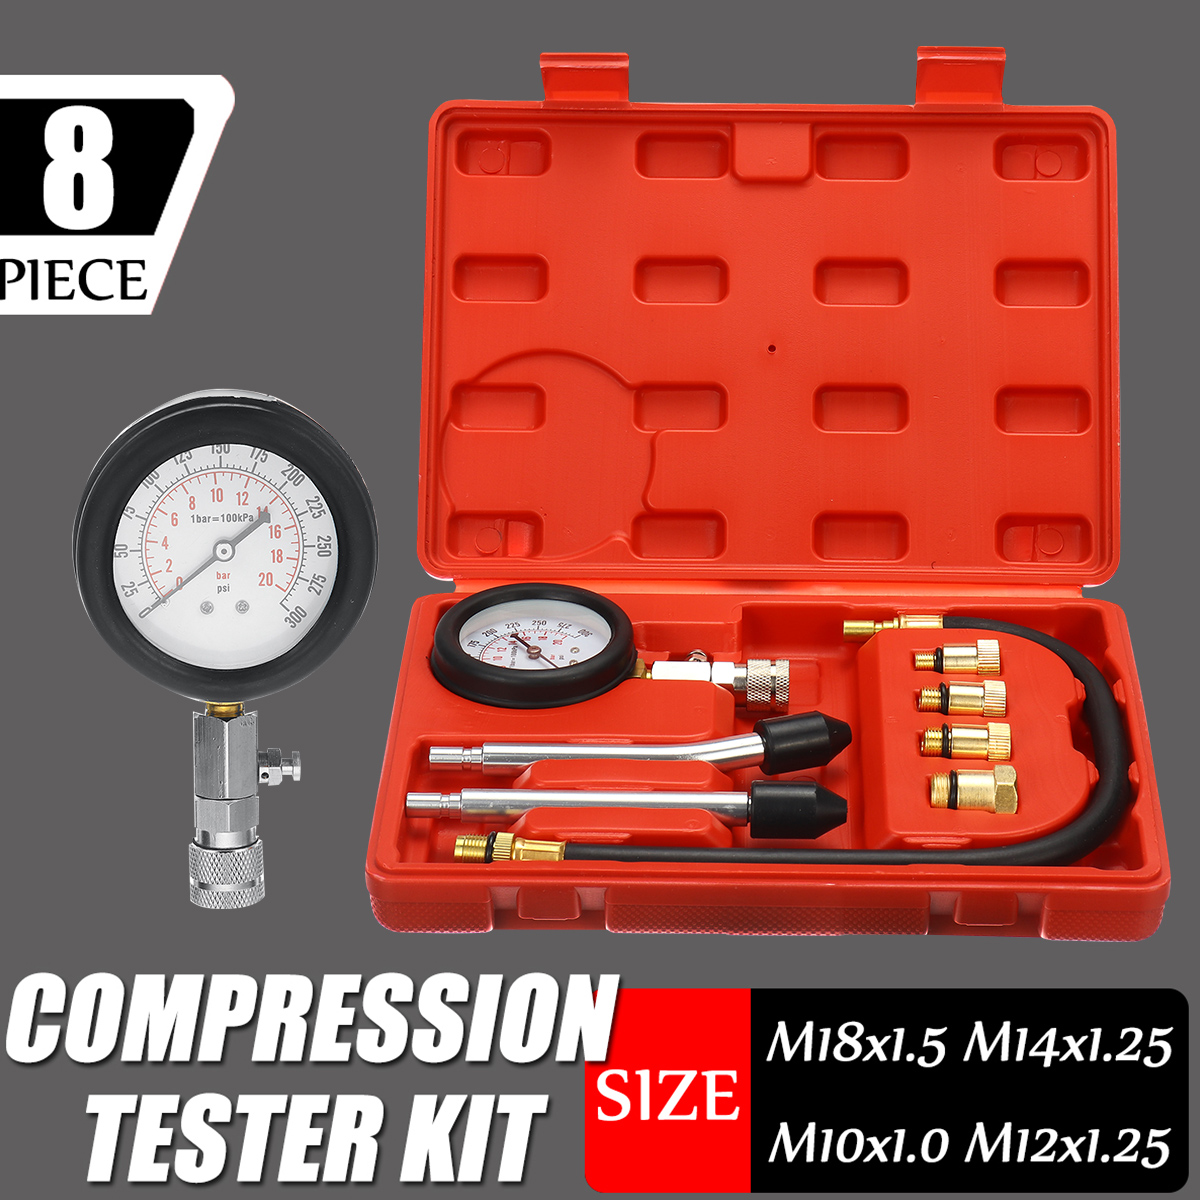 Petrol Engine Pressure Gauge Tester Kit Set Compression Leakage Diagnostic Compressometer Tool For CAR Auto With Case